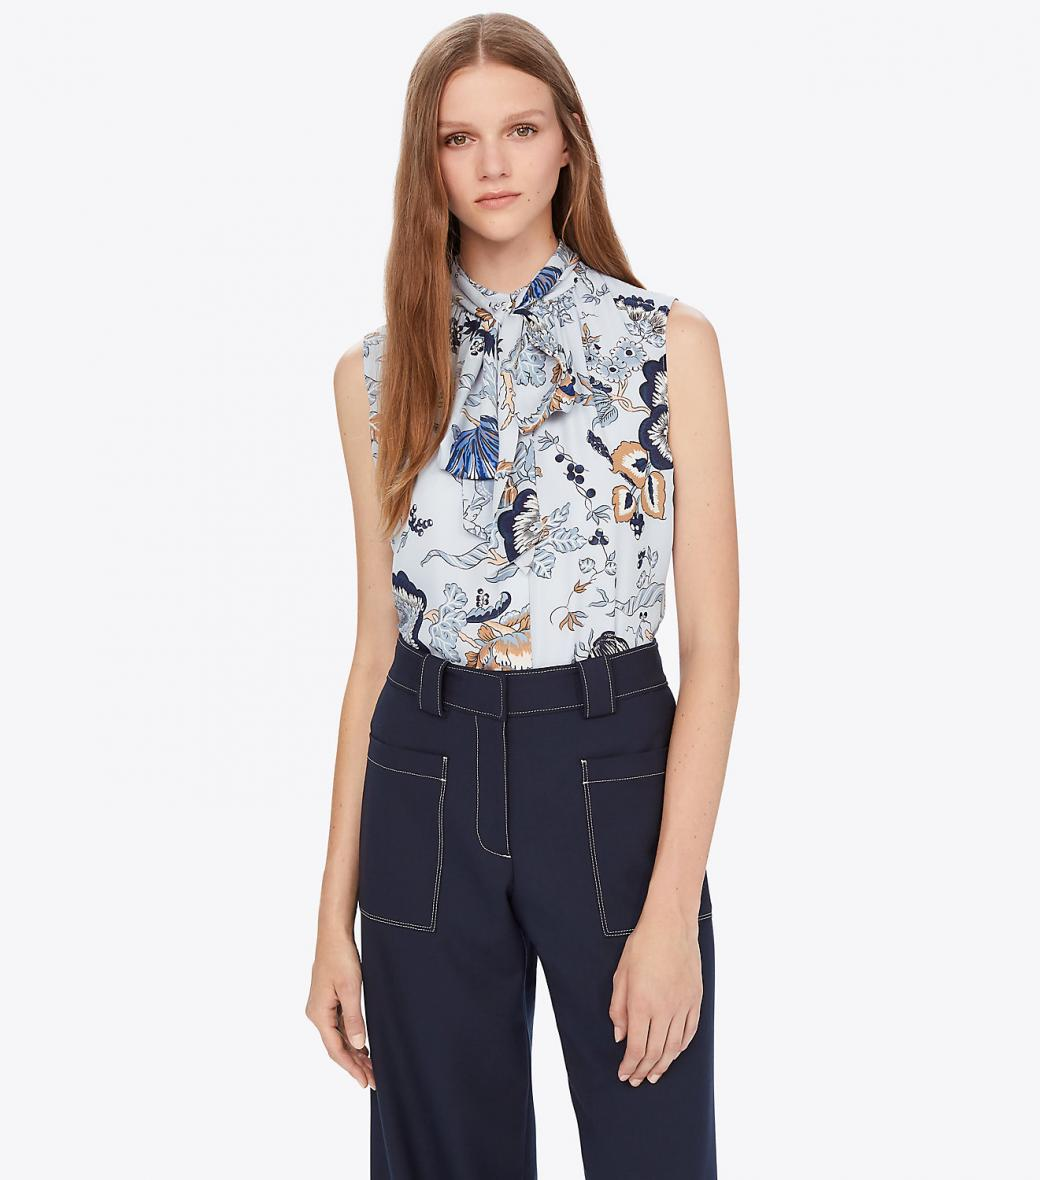 Chemises Femme Femme Tops Chemises Tory Burch Happy Times Sleeveless Bow Blouse Blue Happy Times Thingsofgeek